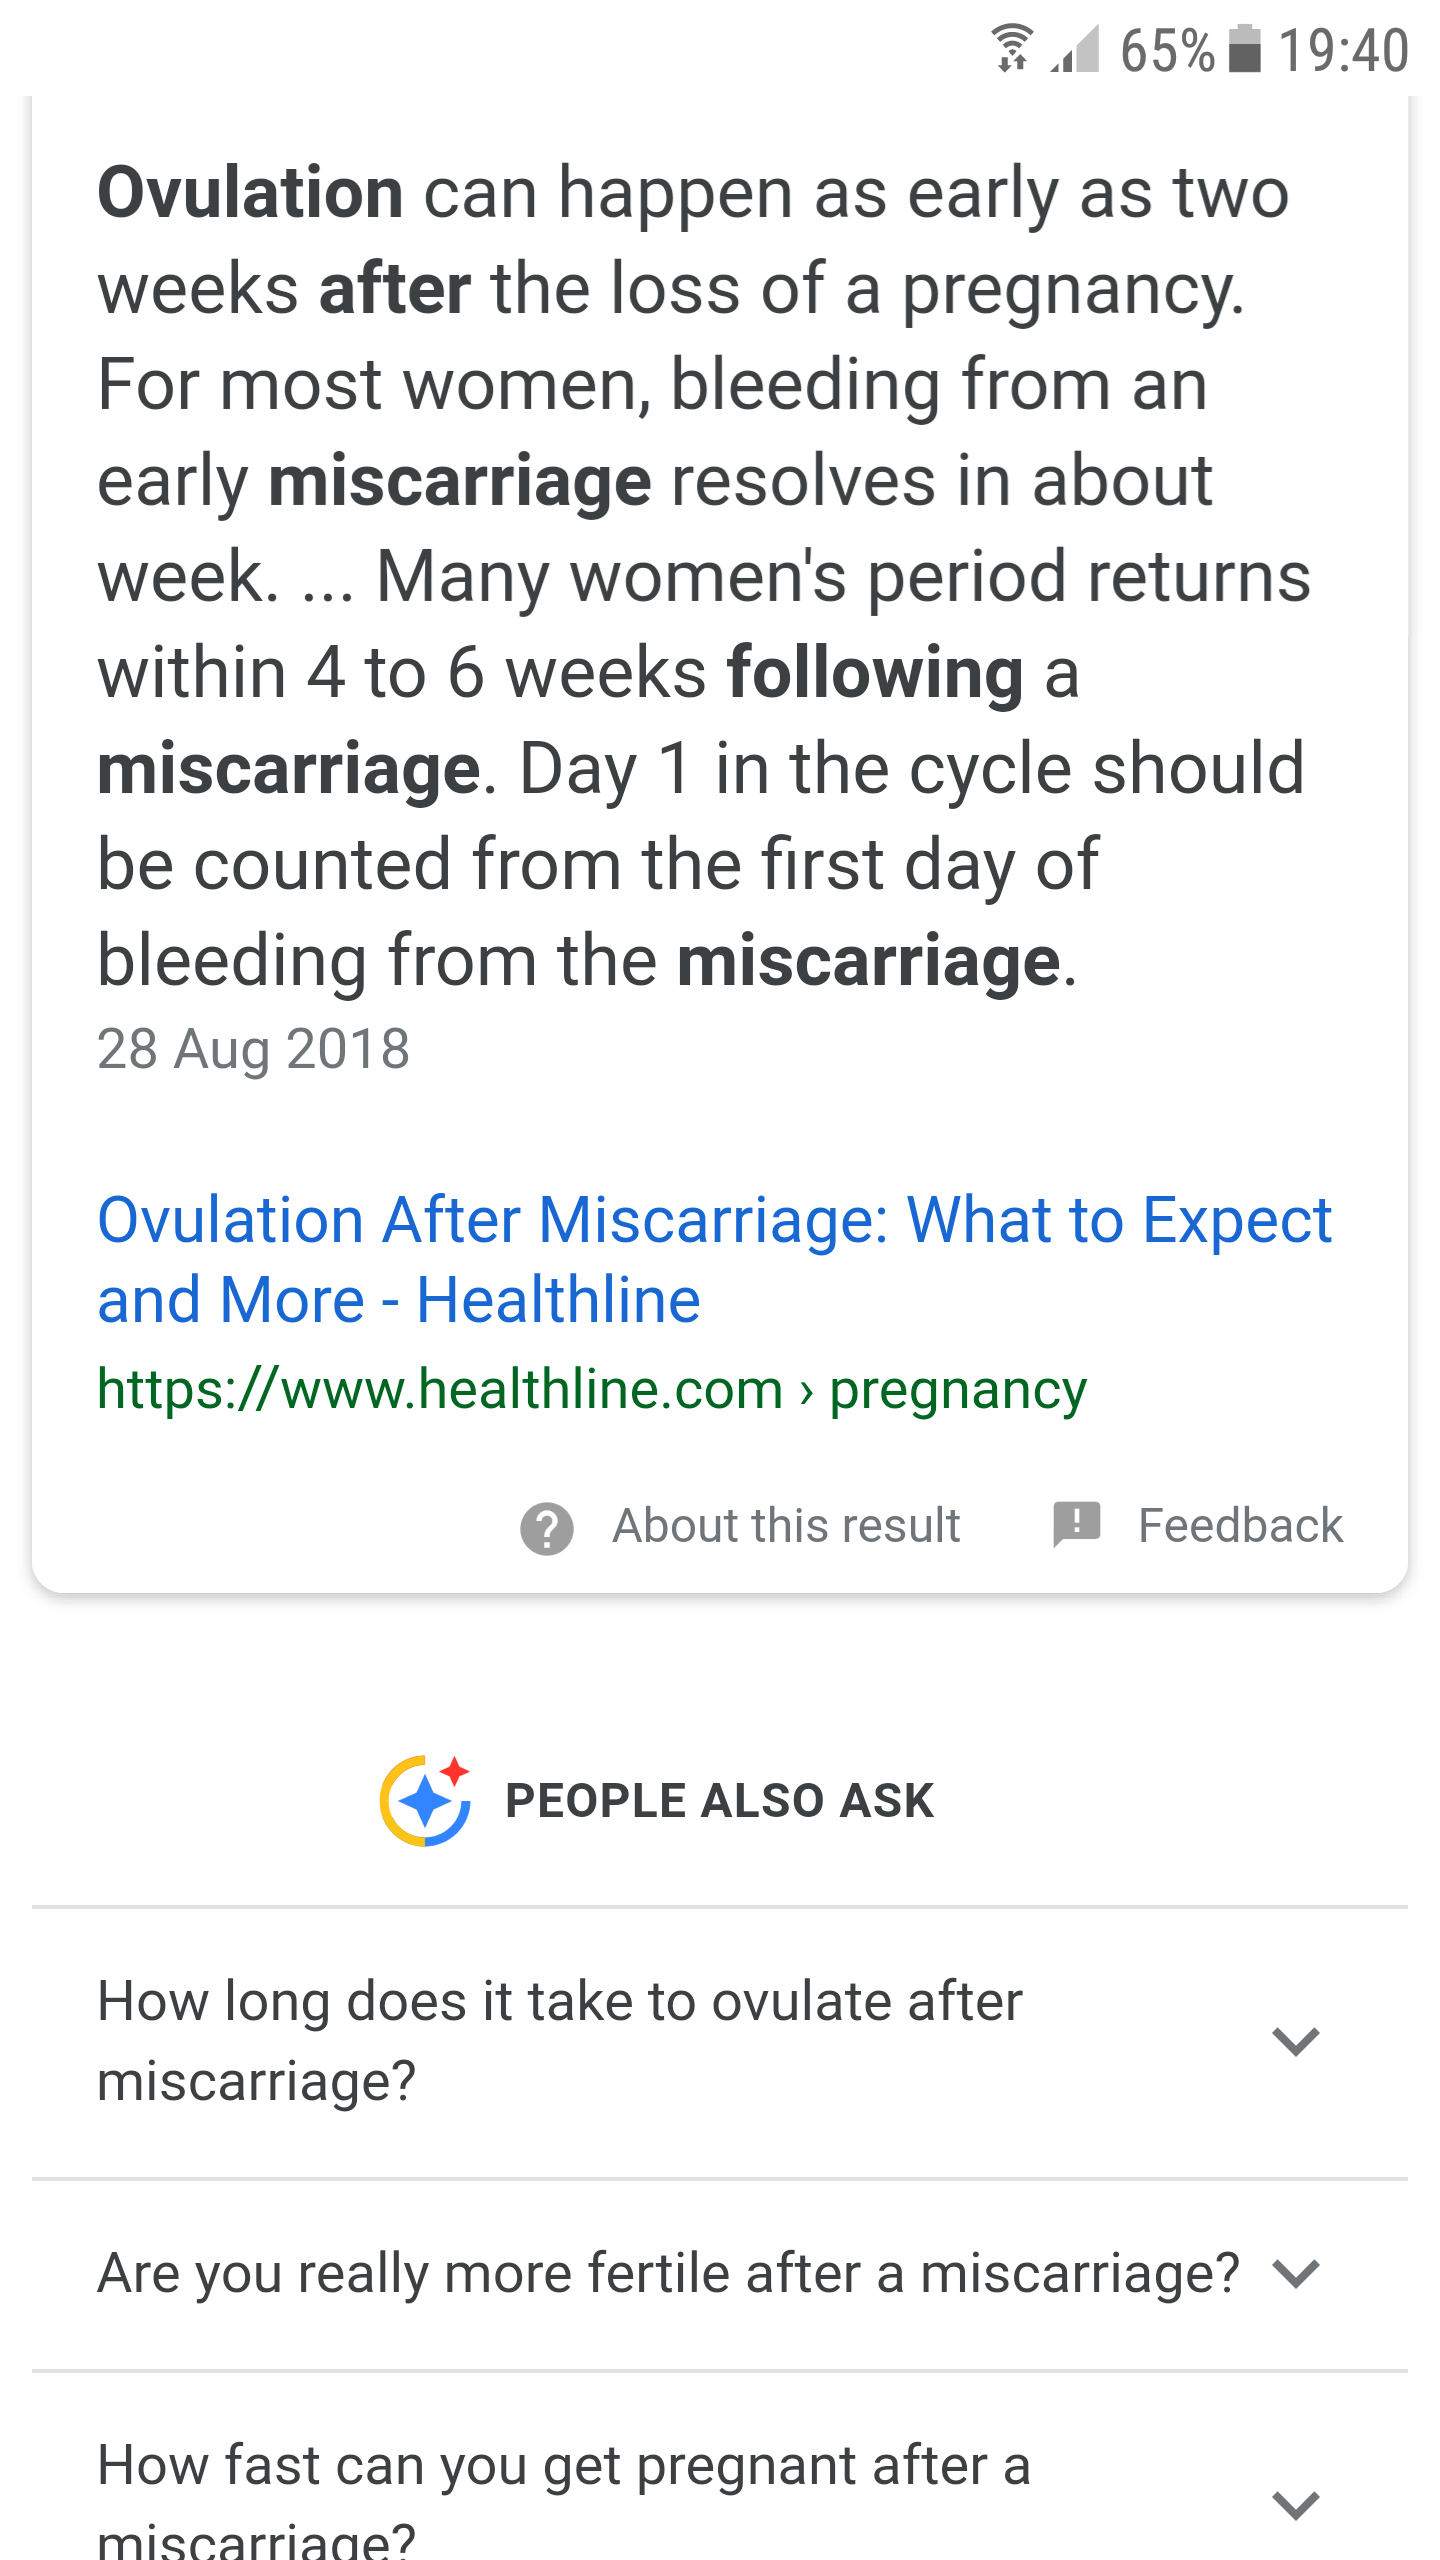 Trying after miscarriage? - Page 3 — MadeForMums Forum